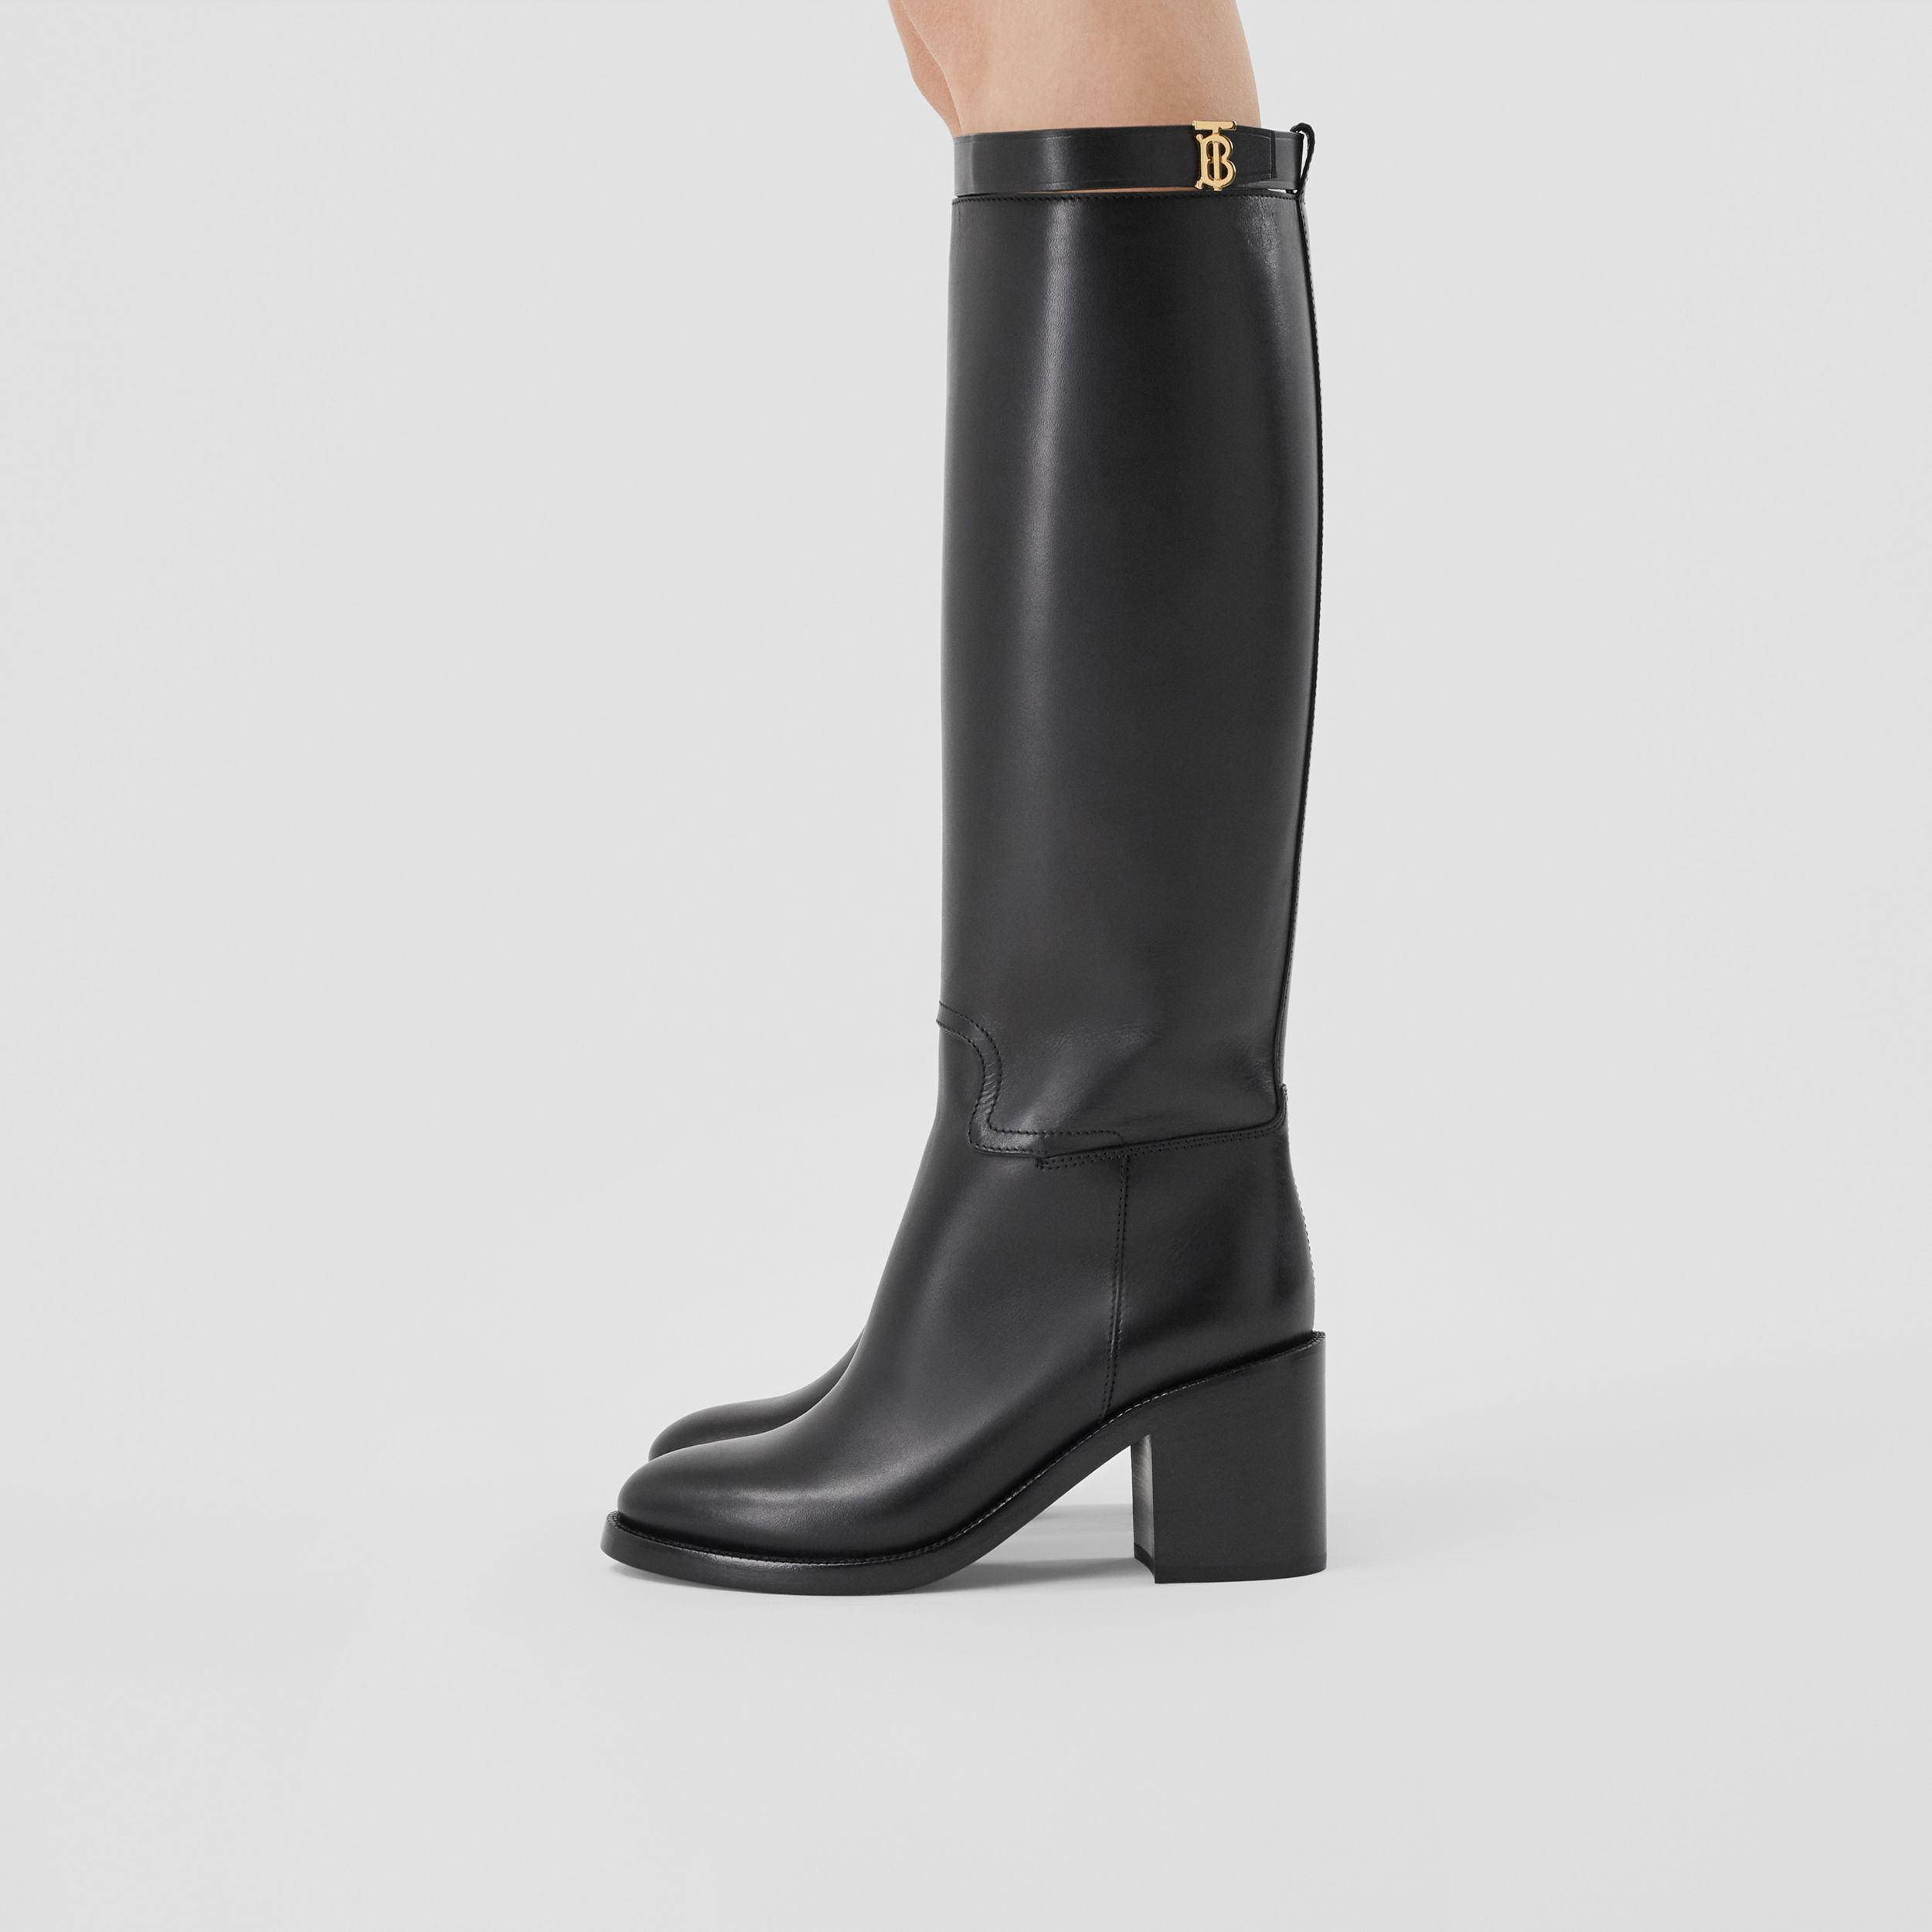 Monogram Motif Leather Knee-high Boots in Black - Women | Burberry - 3